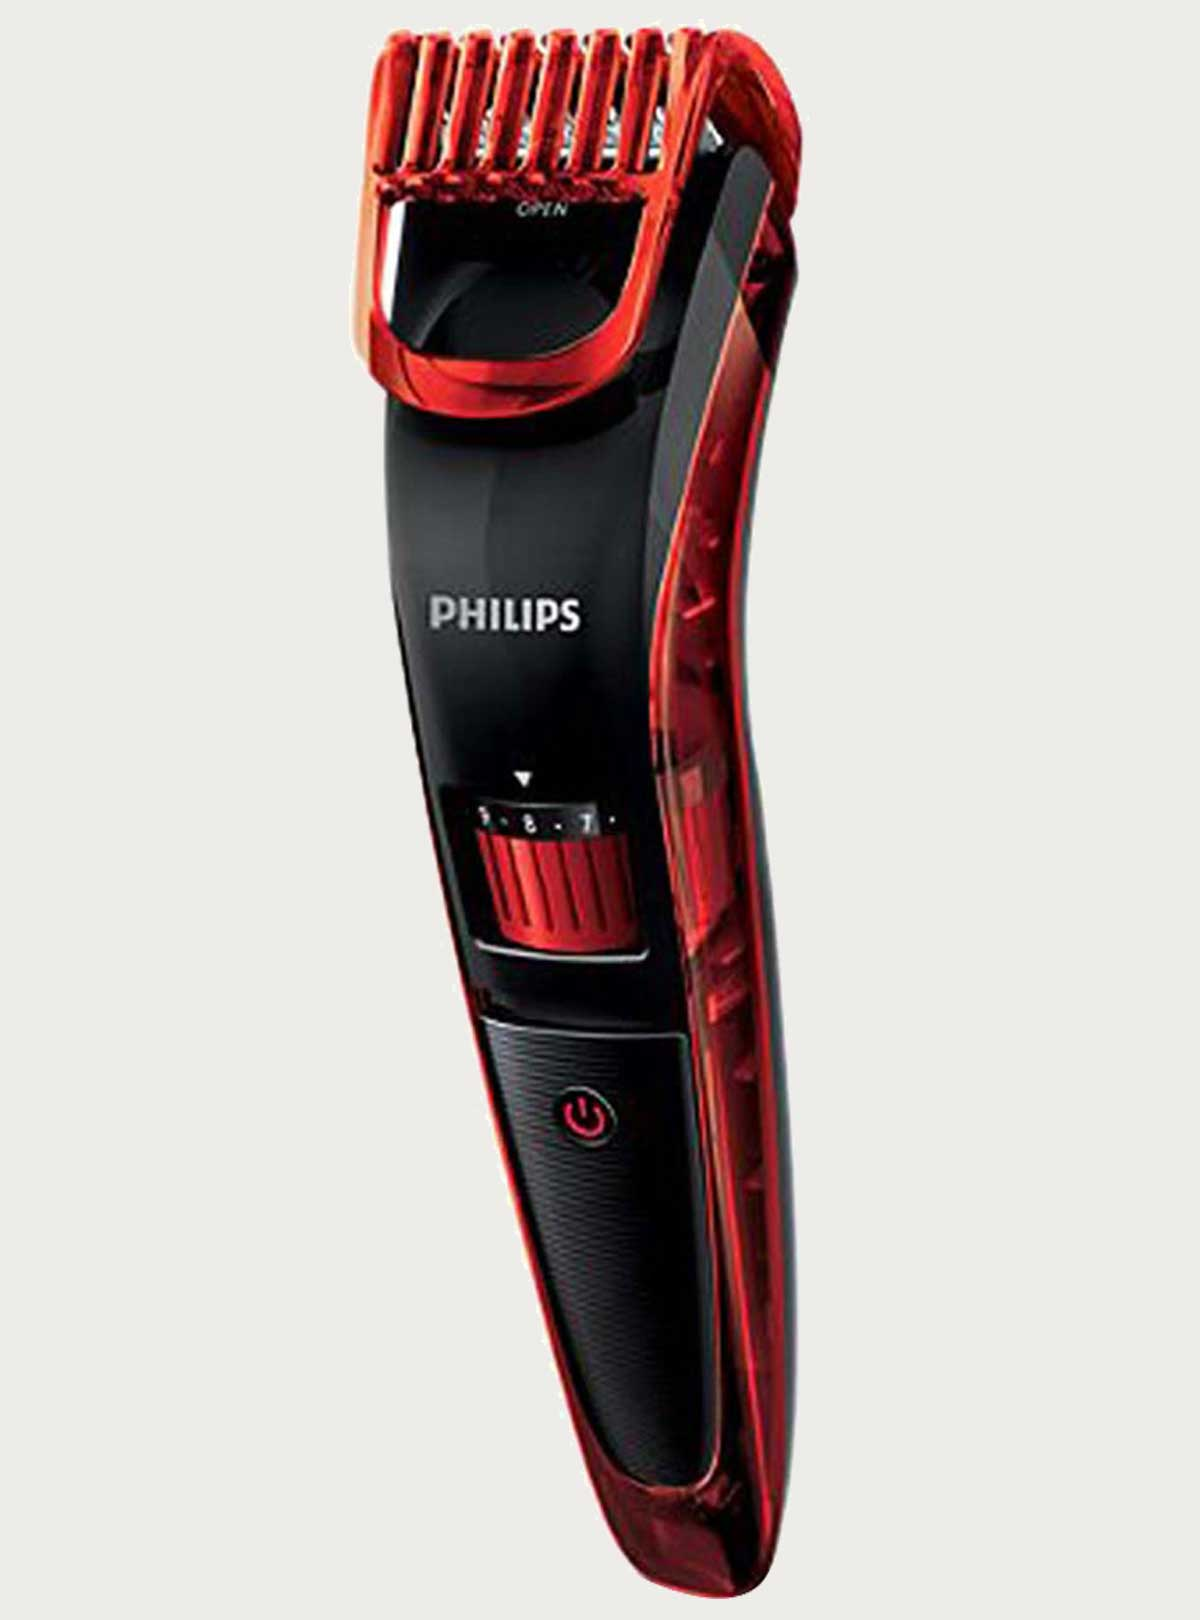 Philips Indonesia Pro skin Bread Trimmer Series 3000 For Men QT-4006